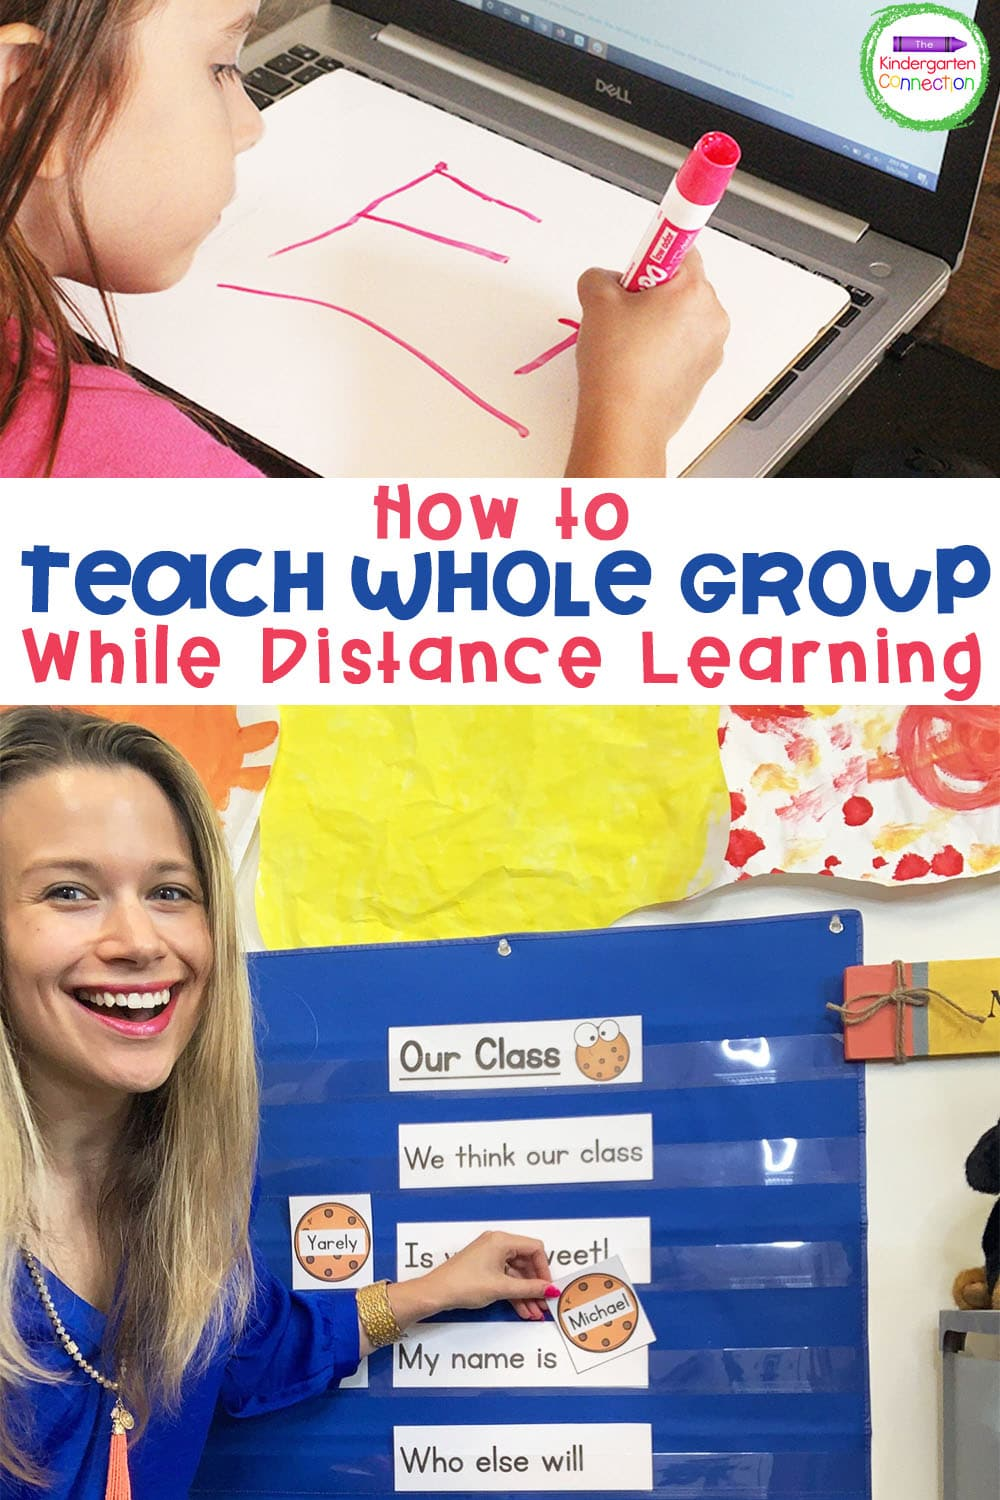 Together, let's dive into what's most important for successful Virtual Whole Group Teaching in Pre-K & Kindergarten!